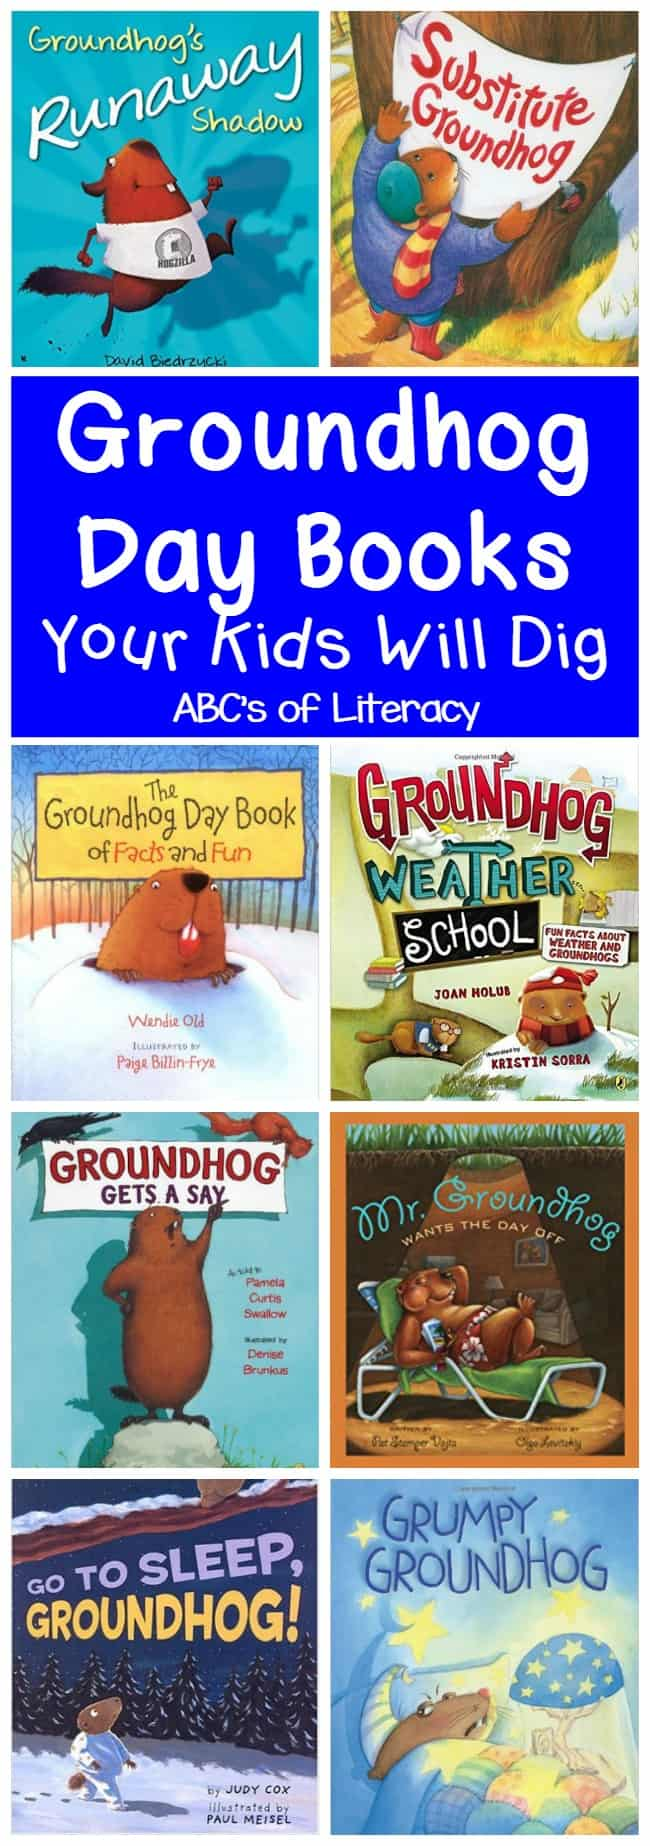 Groundhog Day Books, Groundhog Day, Holiday Books, Children's Books